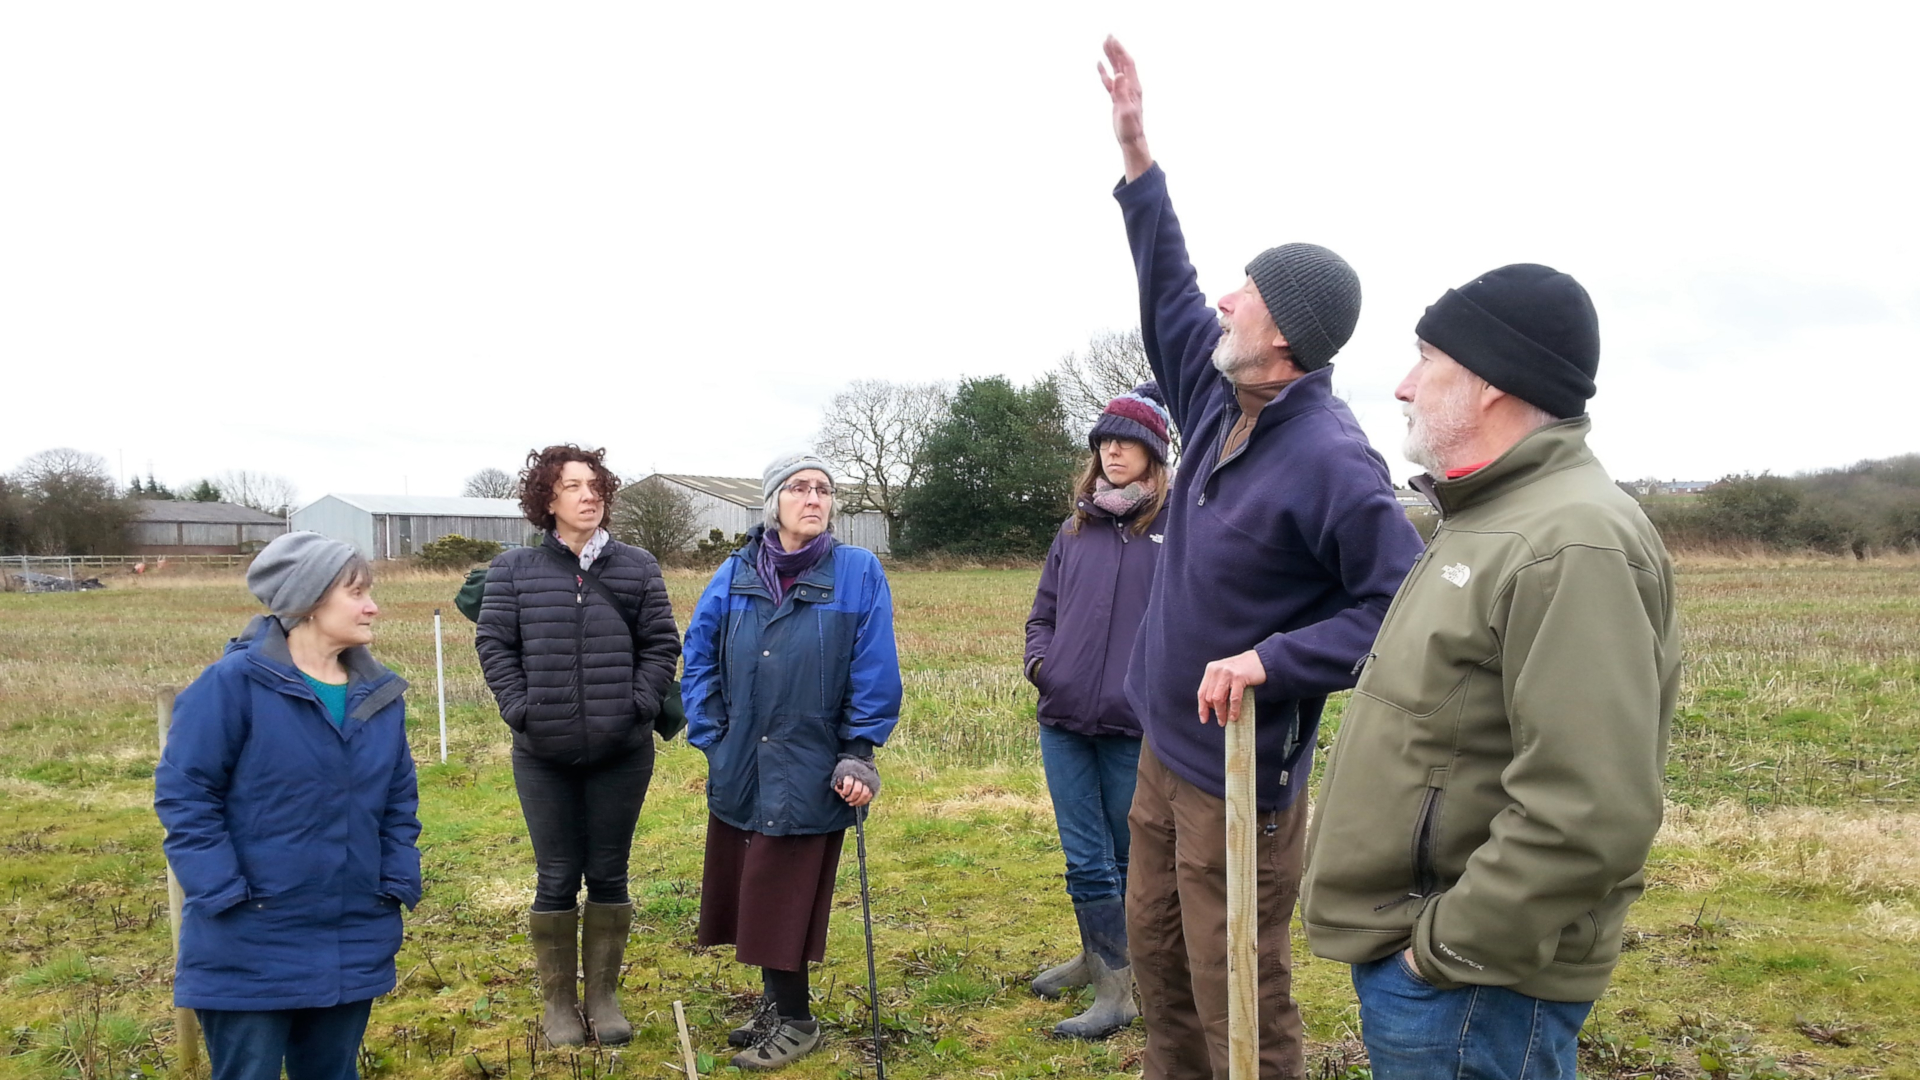 The Alston Moor community-led food growing team are shown around on a visit to the Gibside community farm